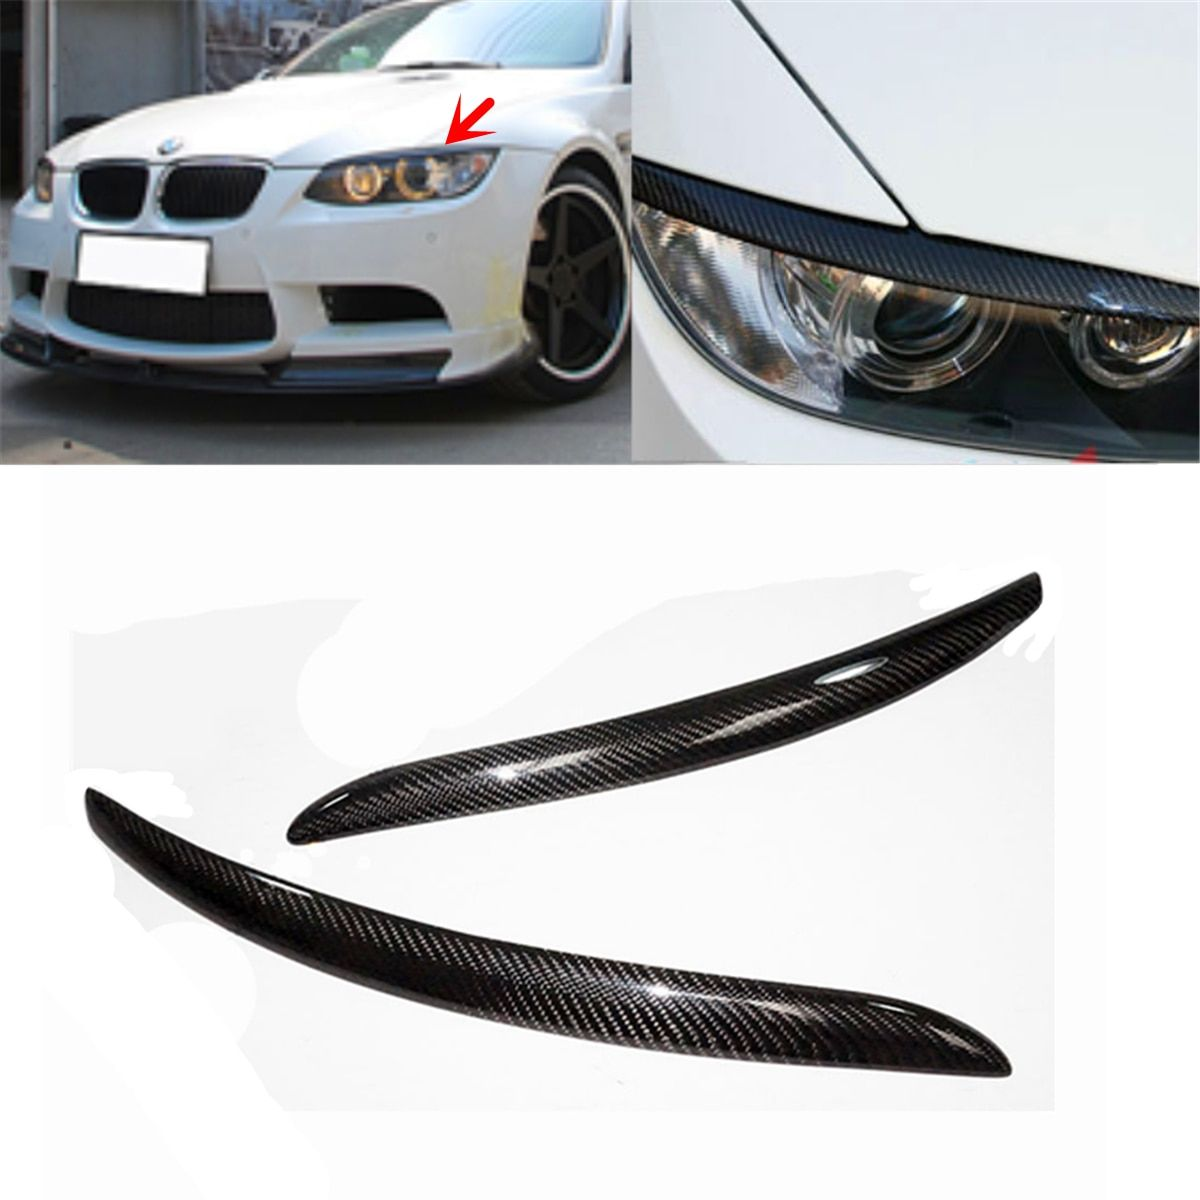 A Pair Headlight Lid Eyebrow EyeLids For BMW E92 E93 335I 335CI Model 2007-2012 Real Carbon Fiber Eyelids Trim Cover